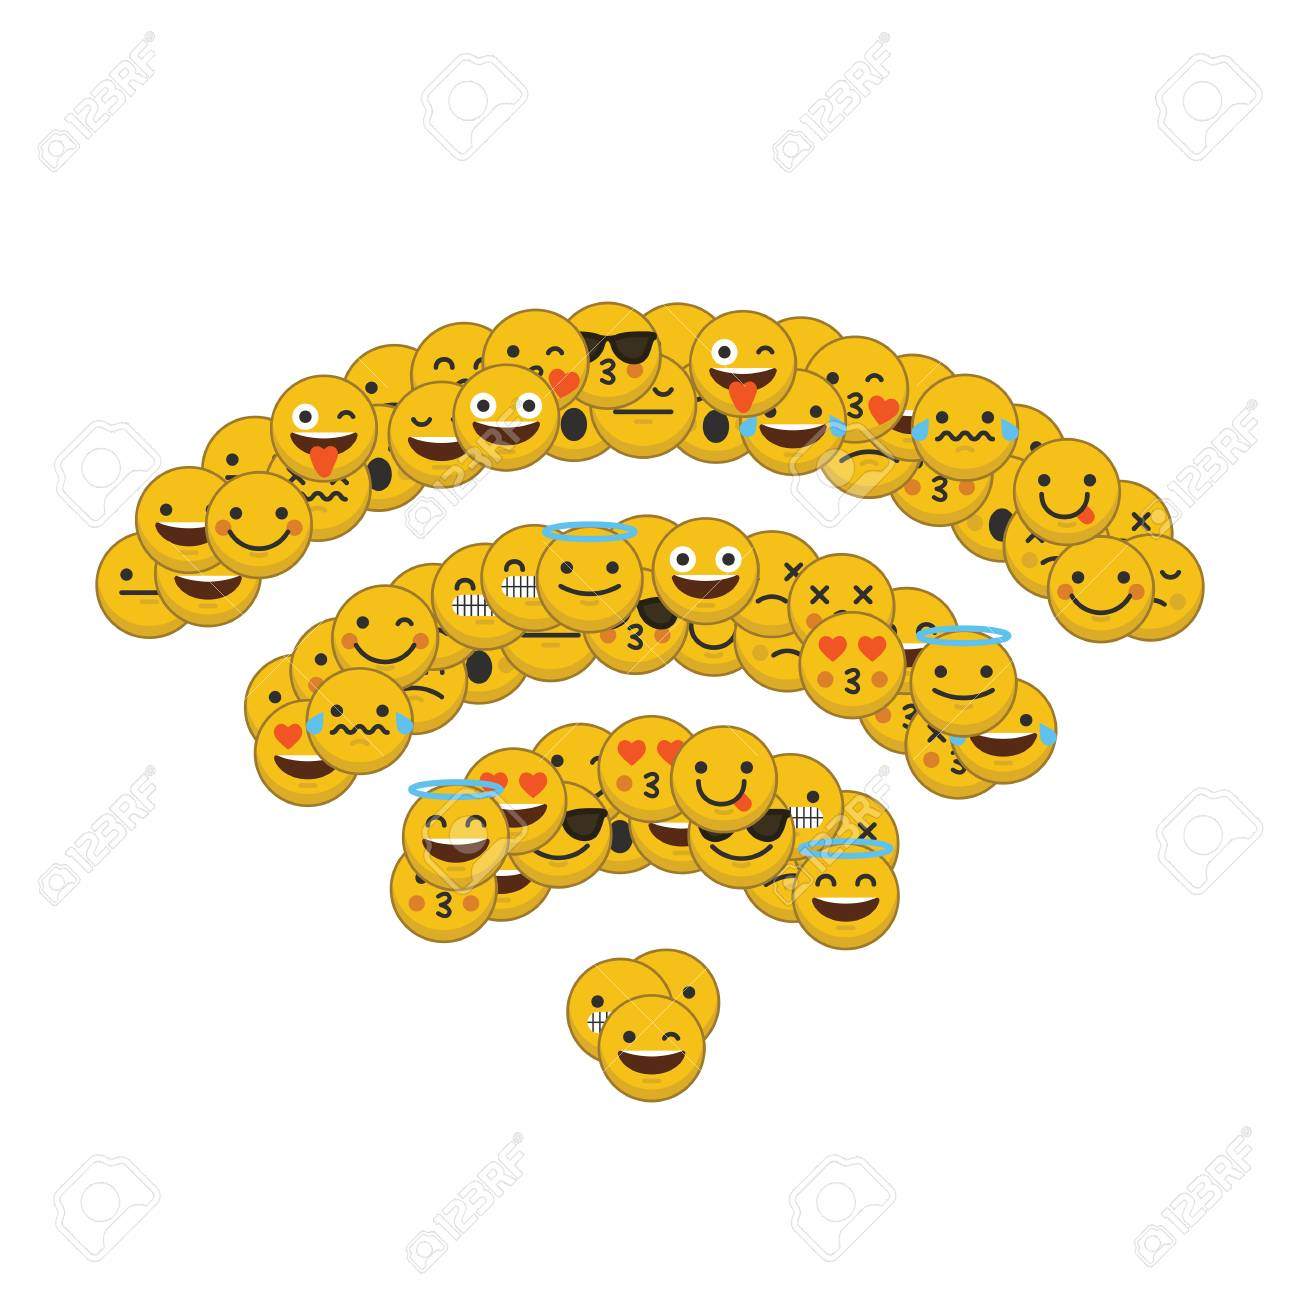 Set of emoji emoticon character faces in a wireless internet